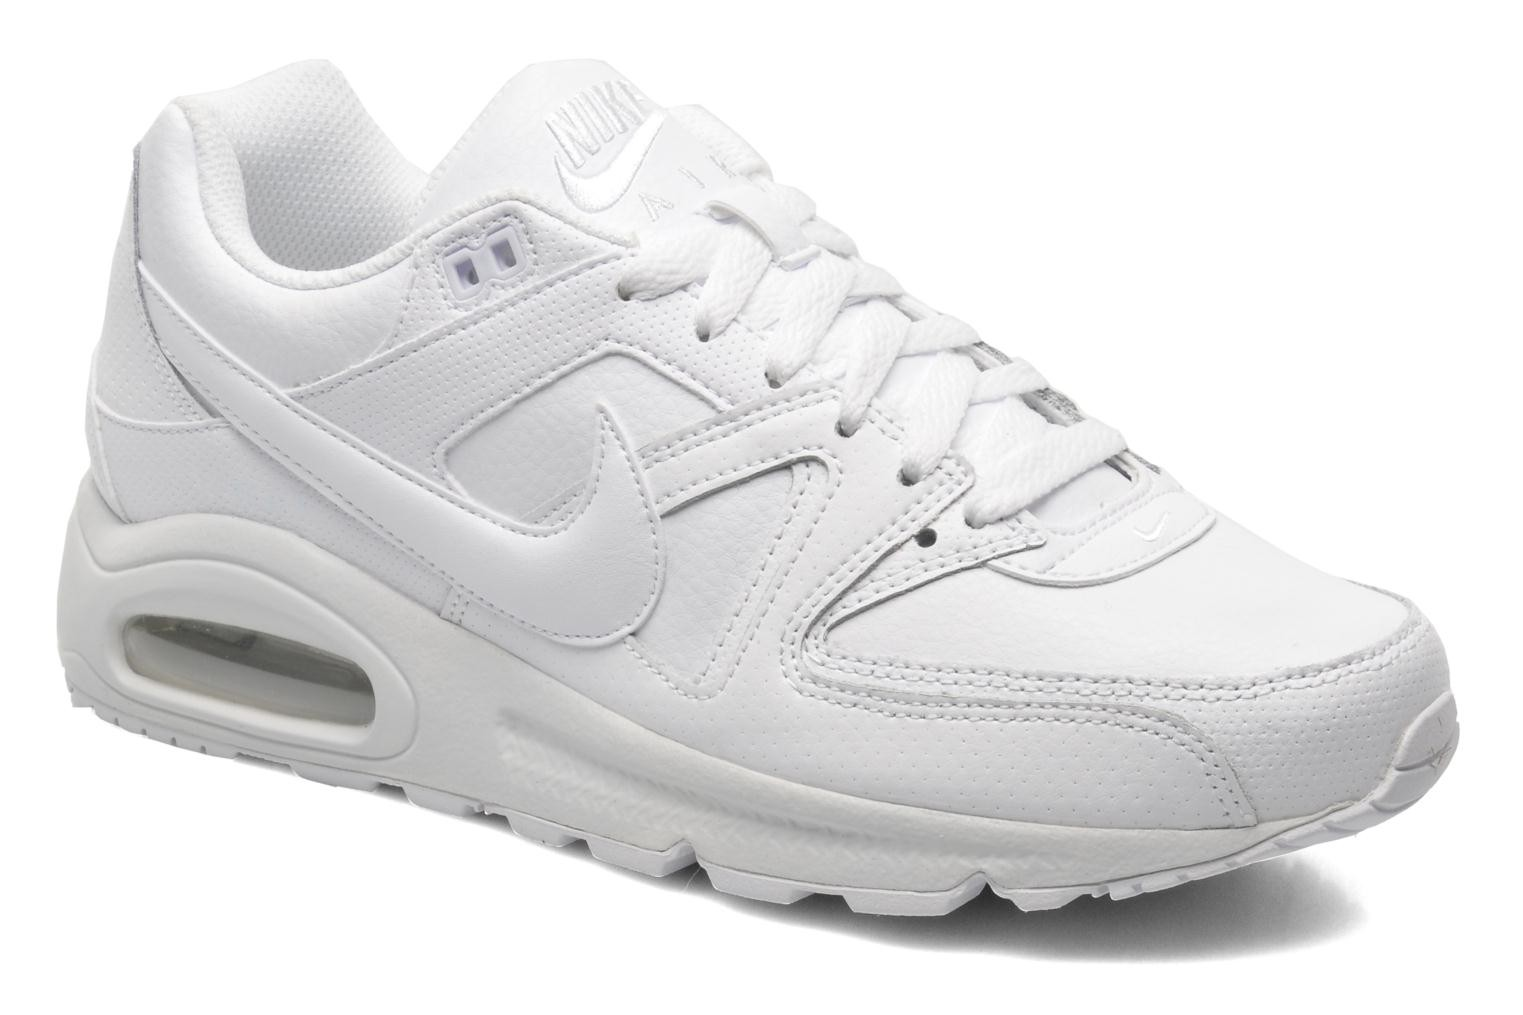 quality design 1ca9b 97a58 nike air max command leather blanche